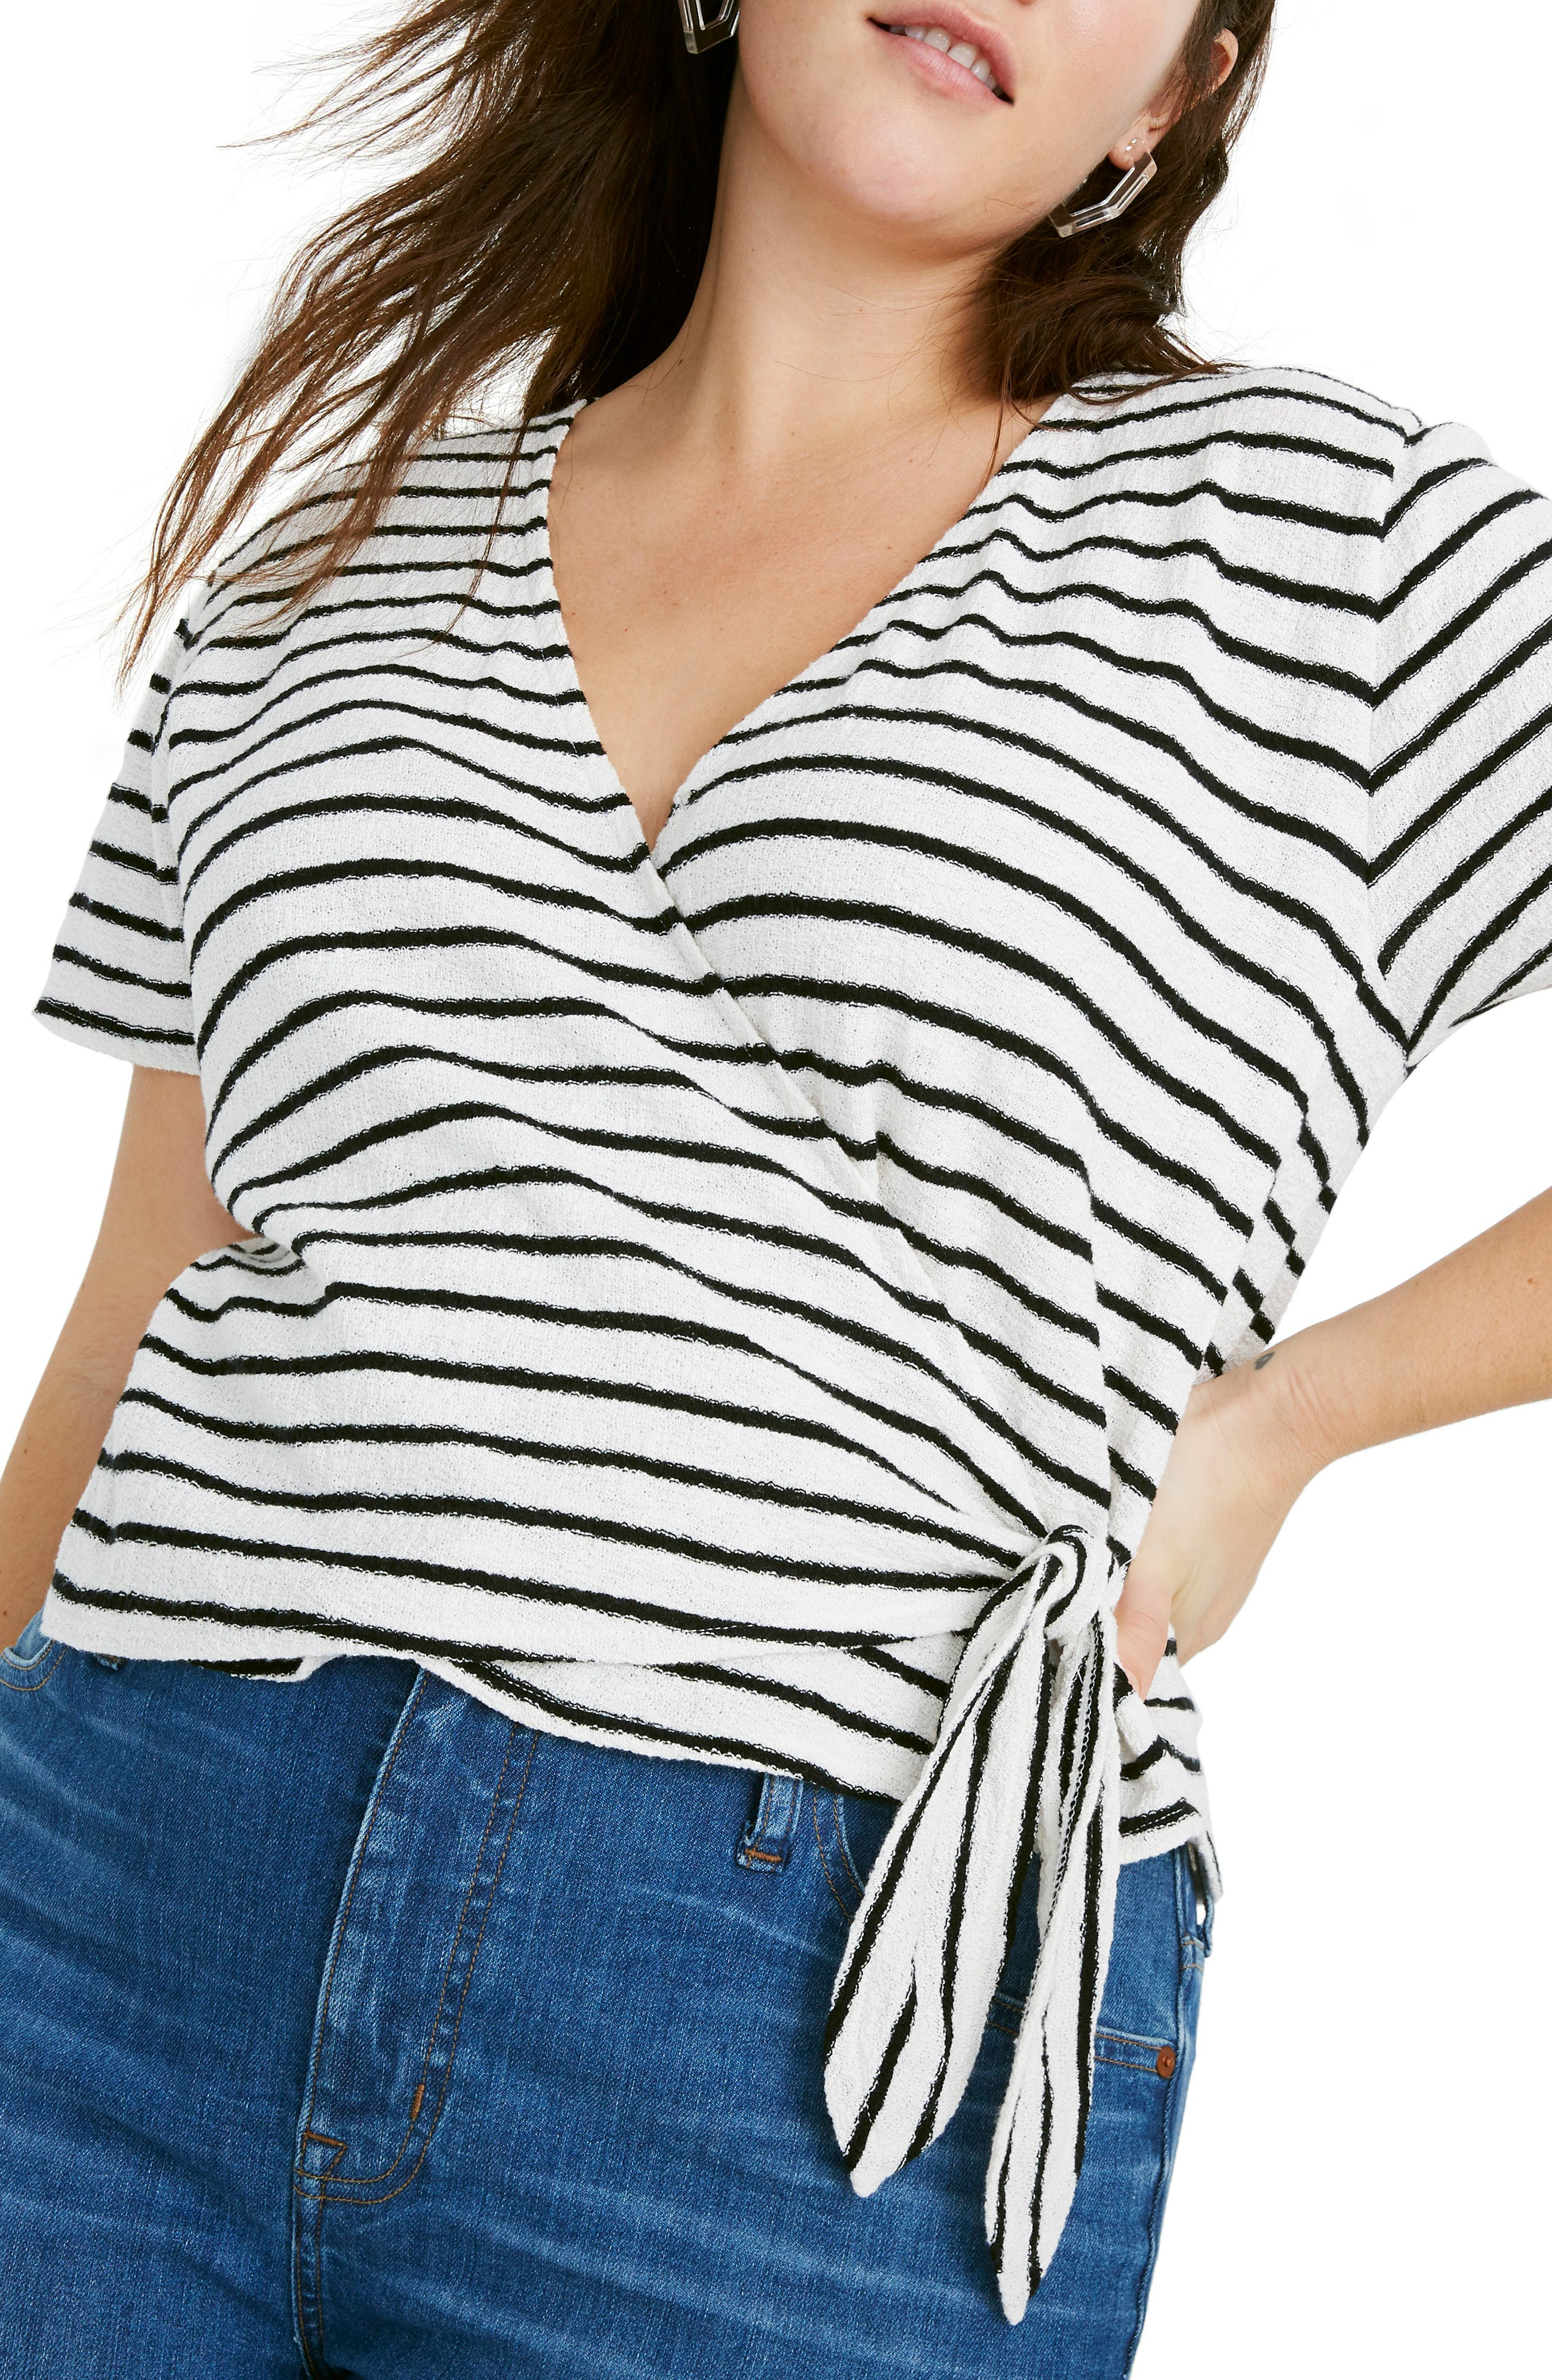 MADEWELL, Short Sleeve Wrap Top, Alternate thumbnail 2, color, 100